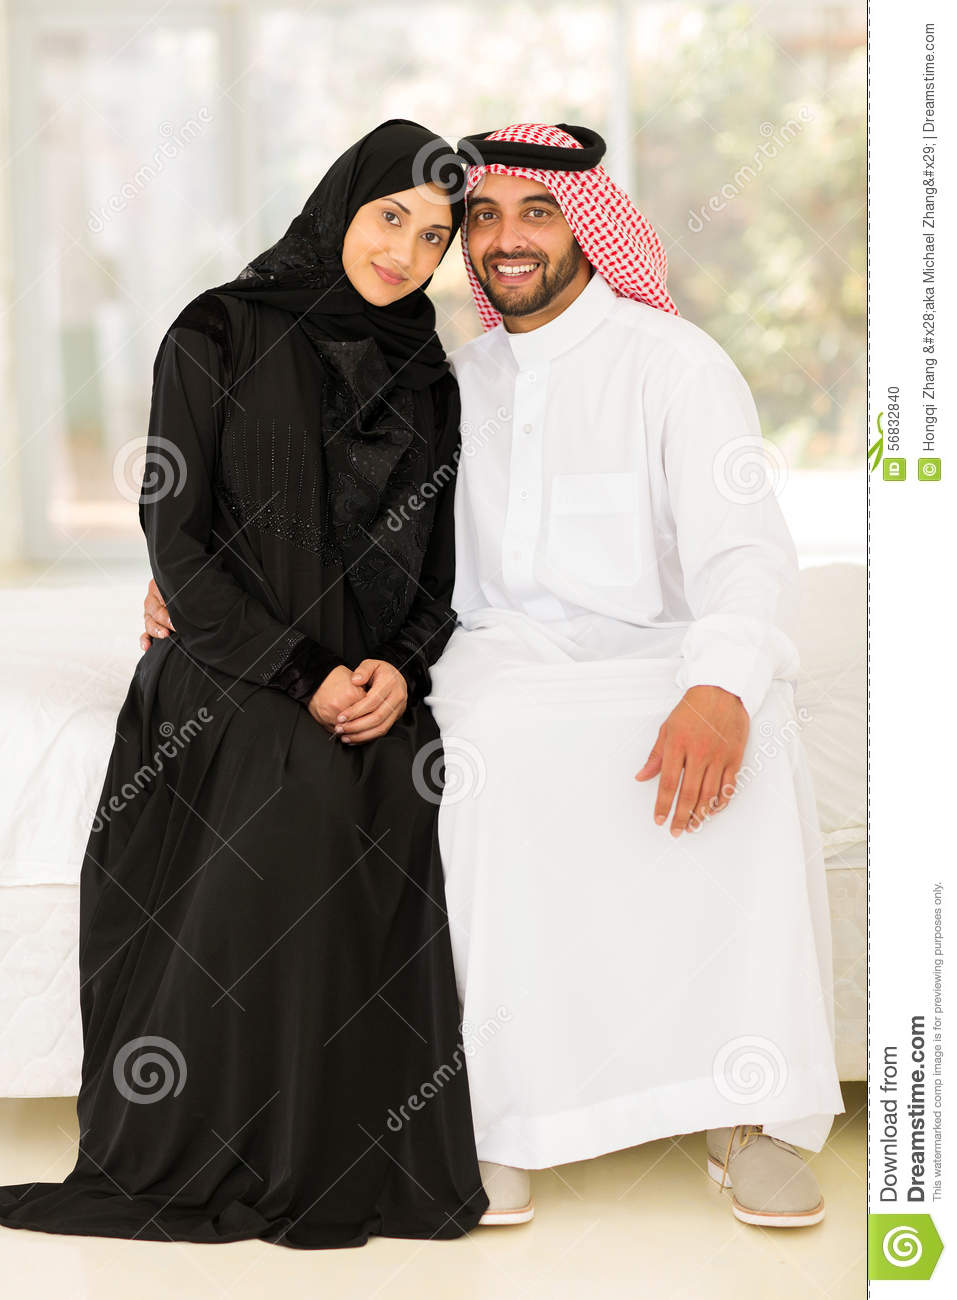 west coxsackie muslim single men Zoosk is a fun simple way to meet greenville single men online interested in dating jewish single men in greenville muslim single men west coxsackie.